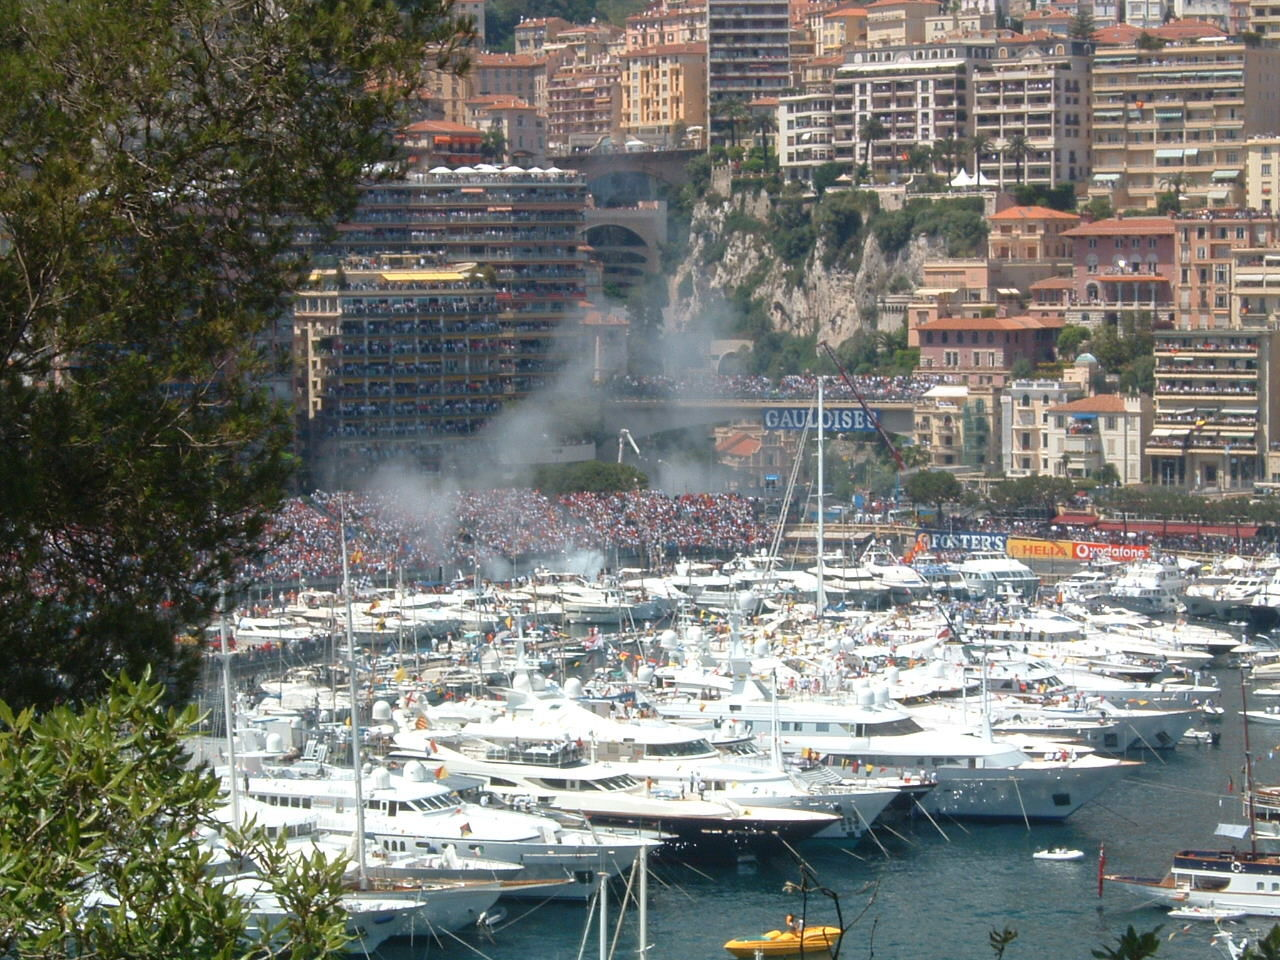 Monaco Gran Prix car on fire Gran Prix Monaco Outdoors Water